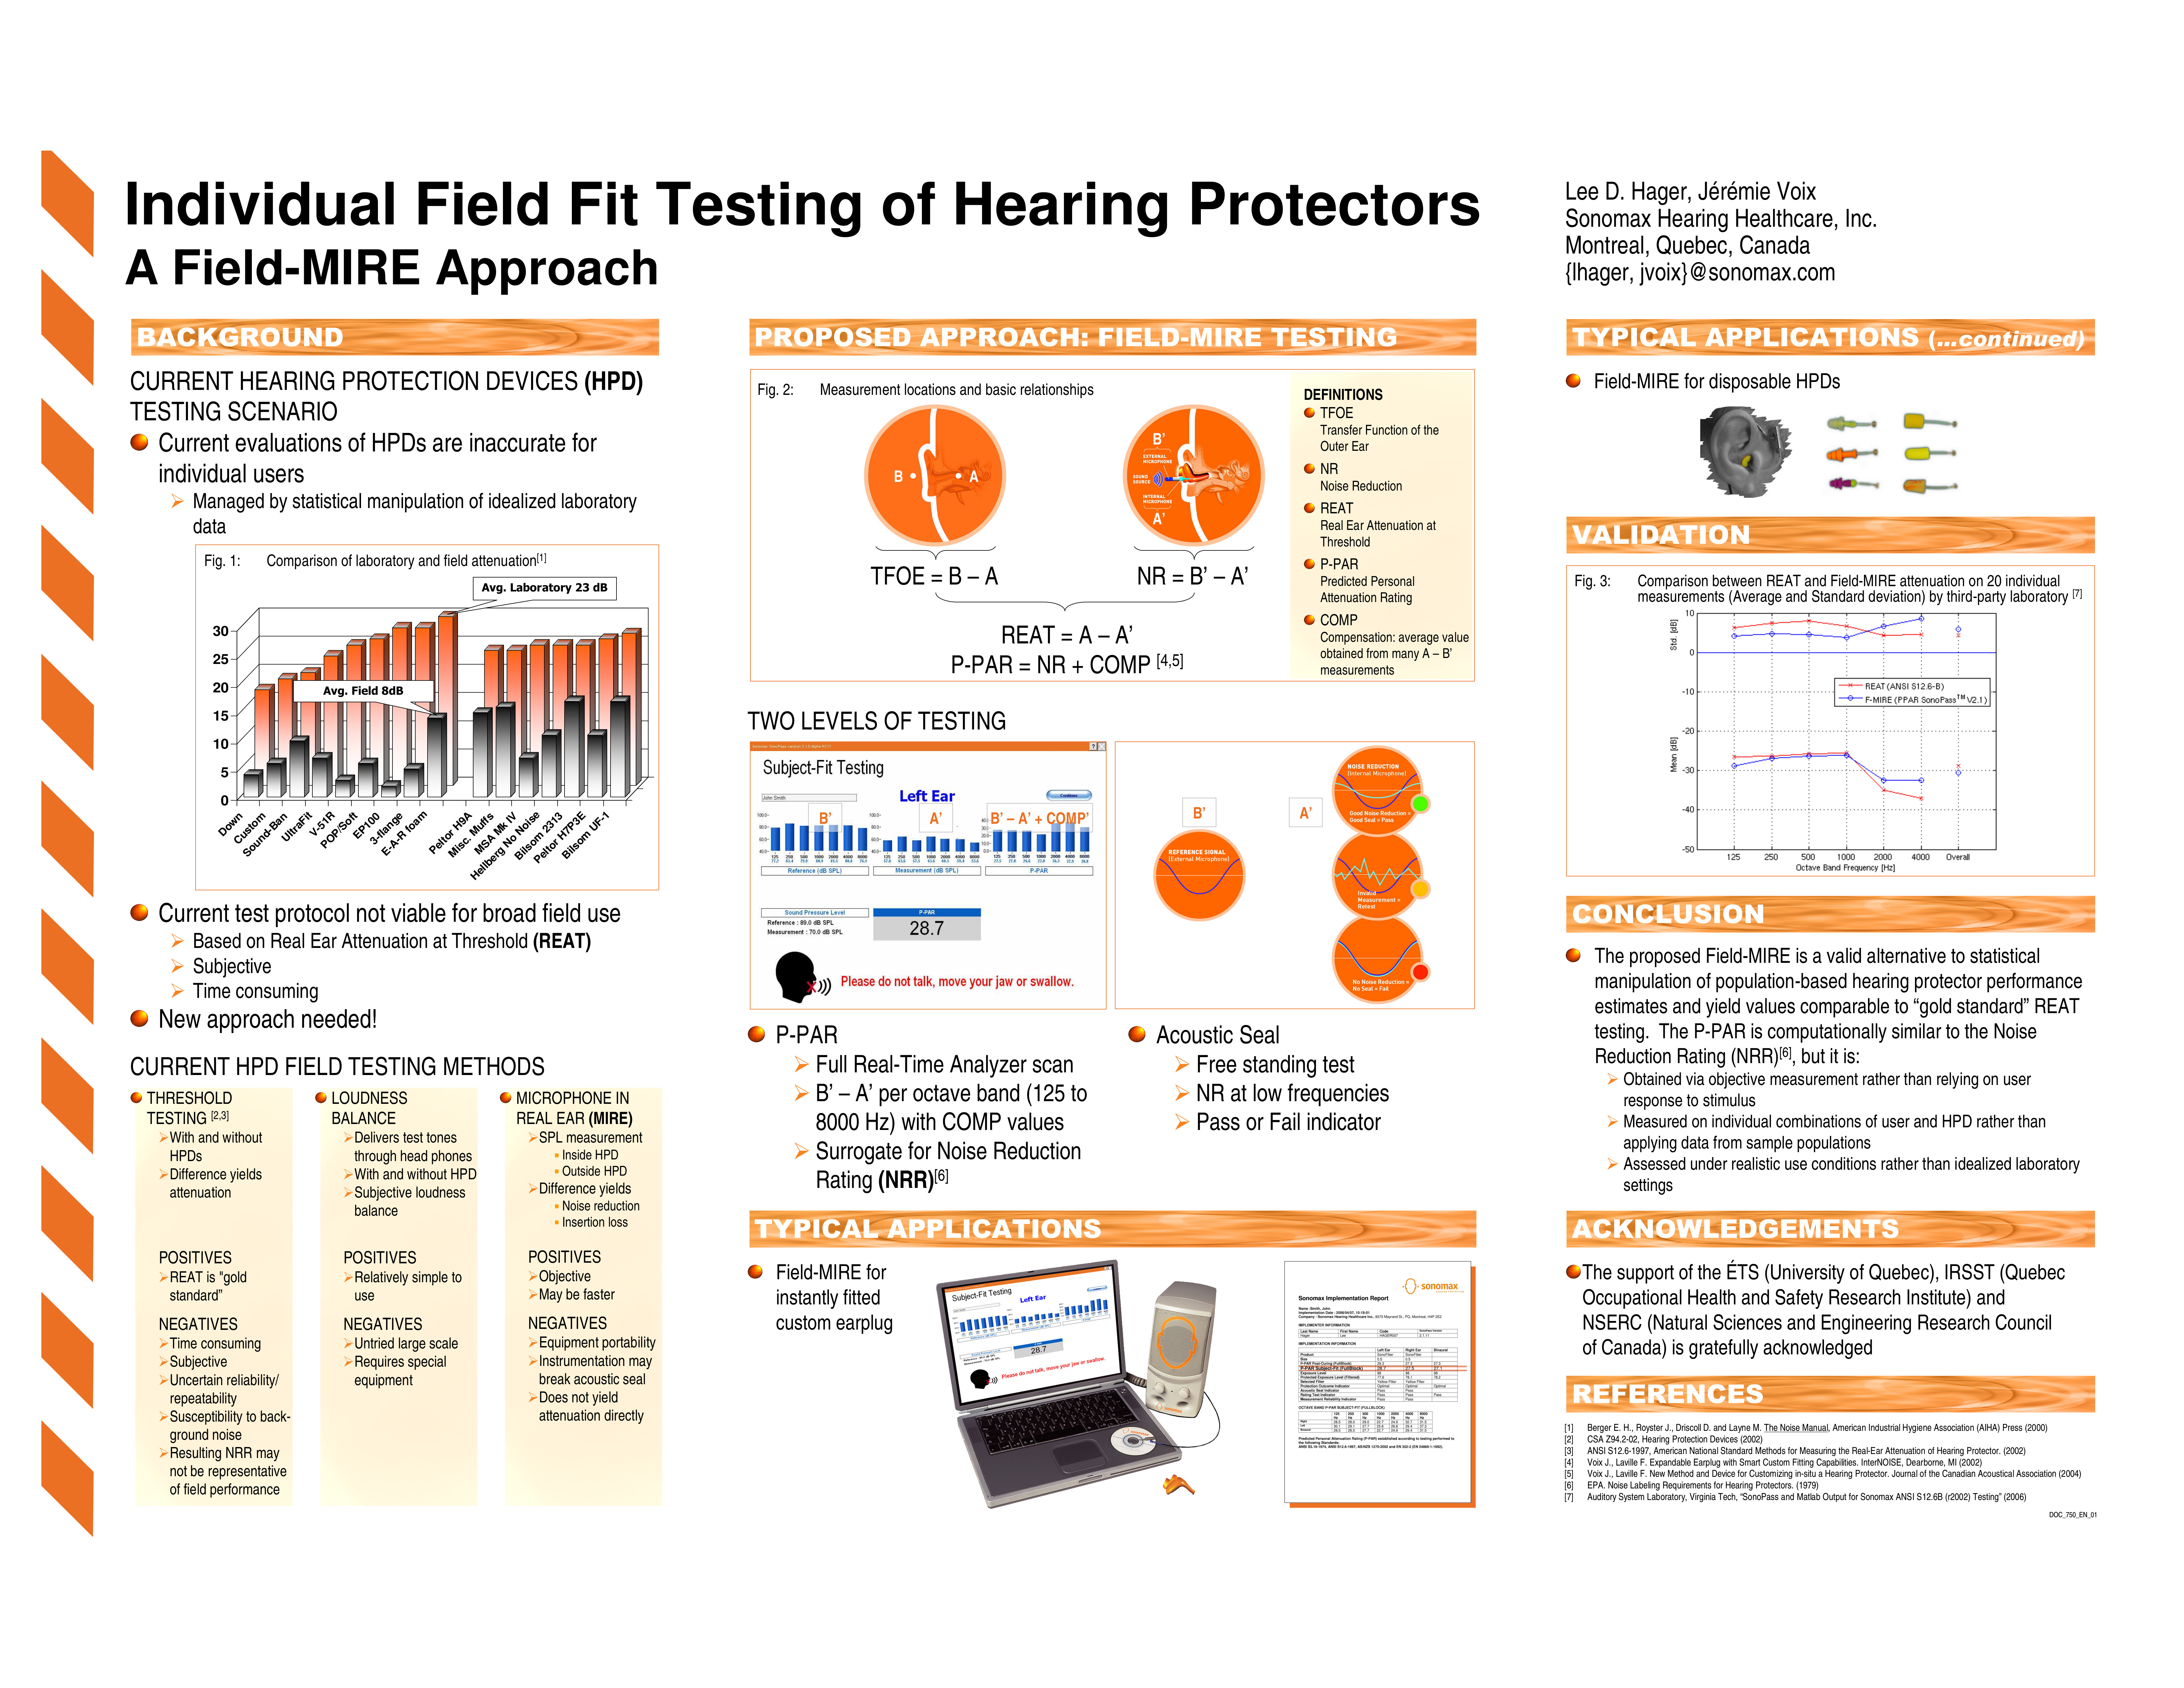 Jérémie Voix and Lee D. Hager - 2006 - Individual Field Fit Testing of Hearing Protectors